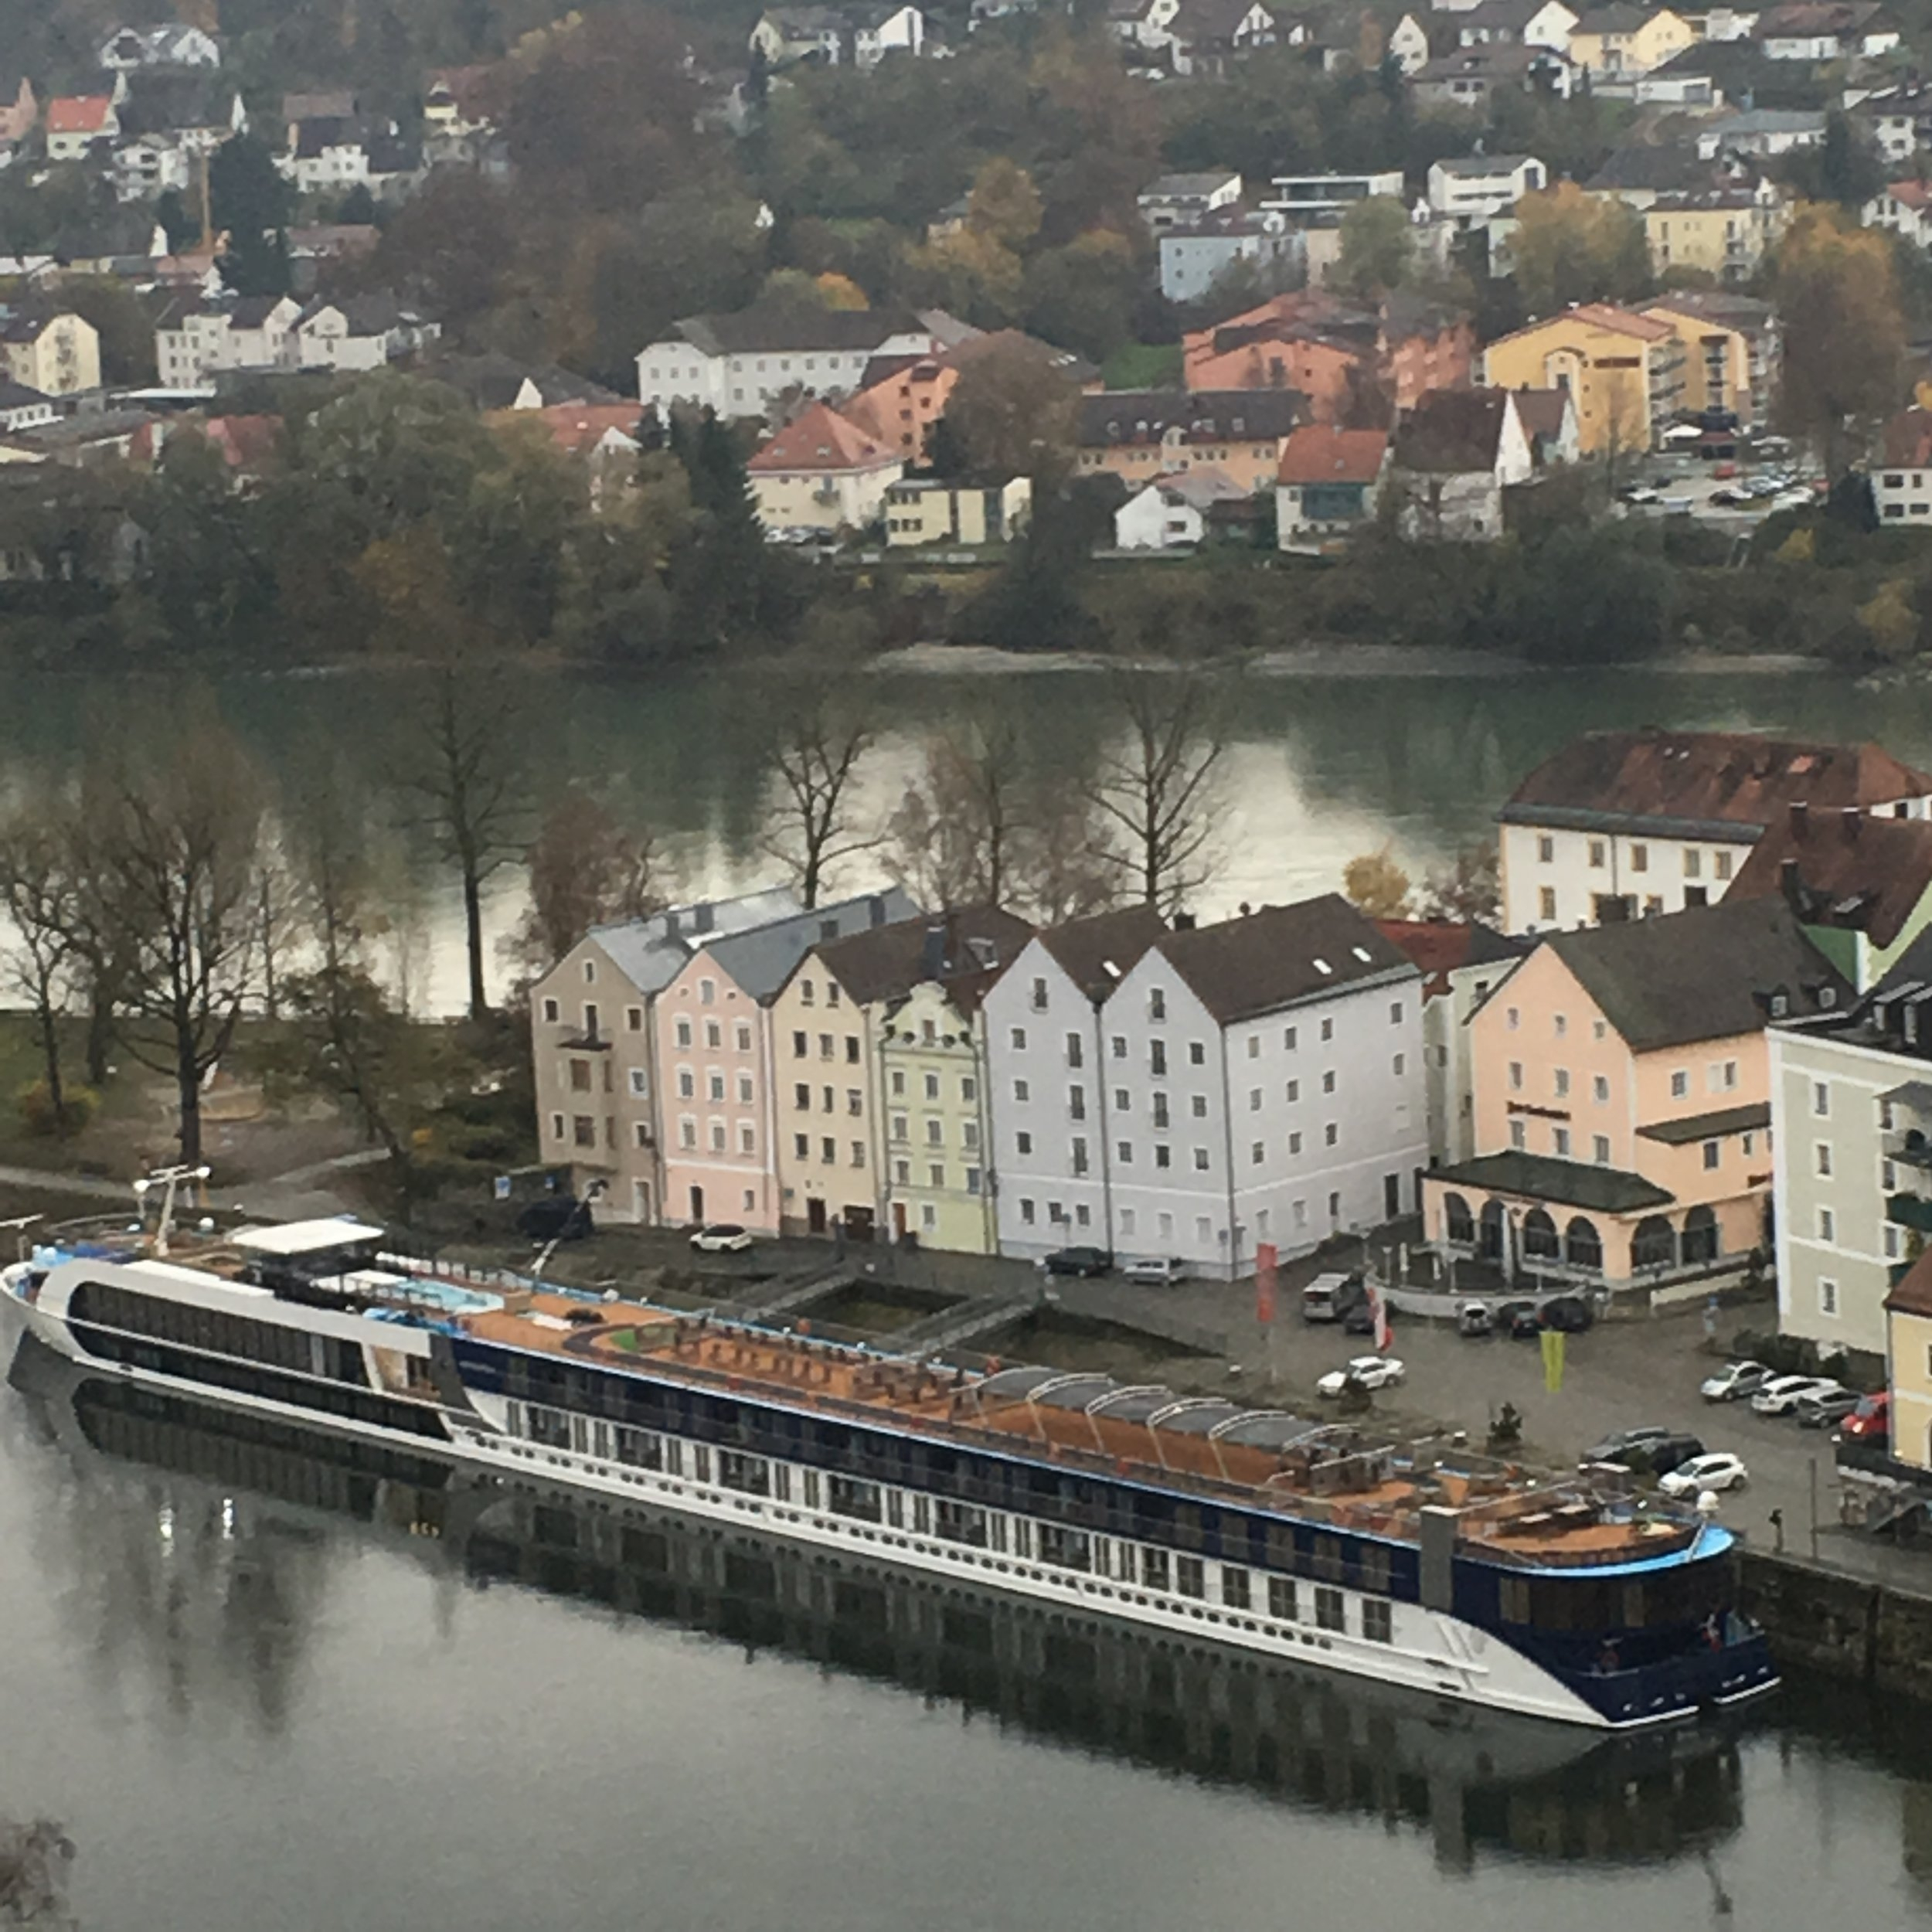 AmaWaterways' AmaSerena docked in Passau, Germany.